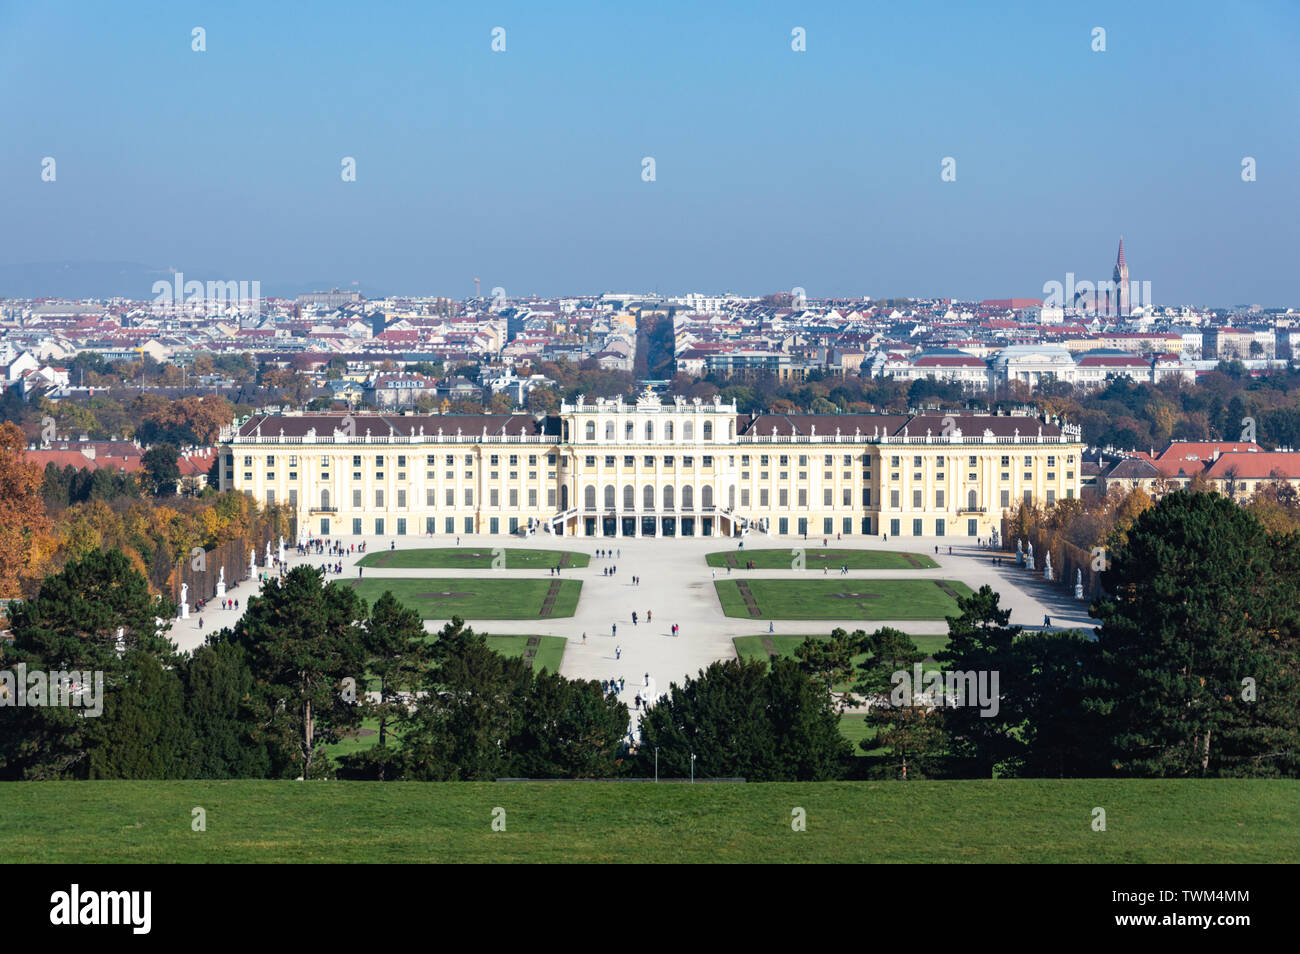 Vienna, AT - October 31, 2015: Autumn view of the Schönbrunn Palace and the city of Vienna from the Gloriette hill - Stock Image